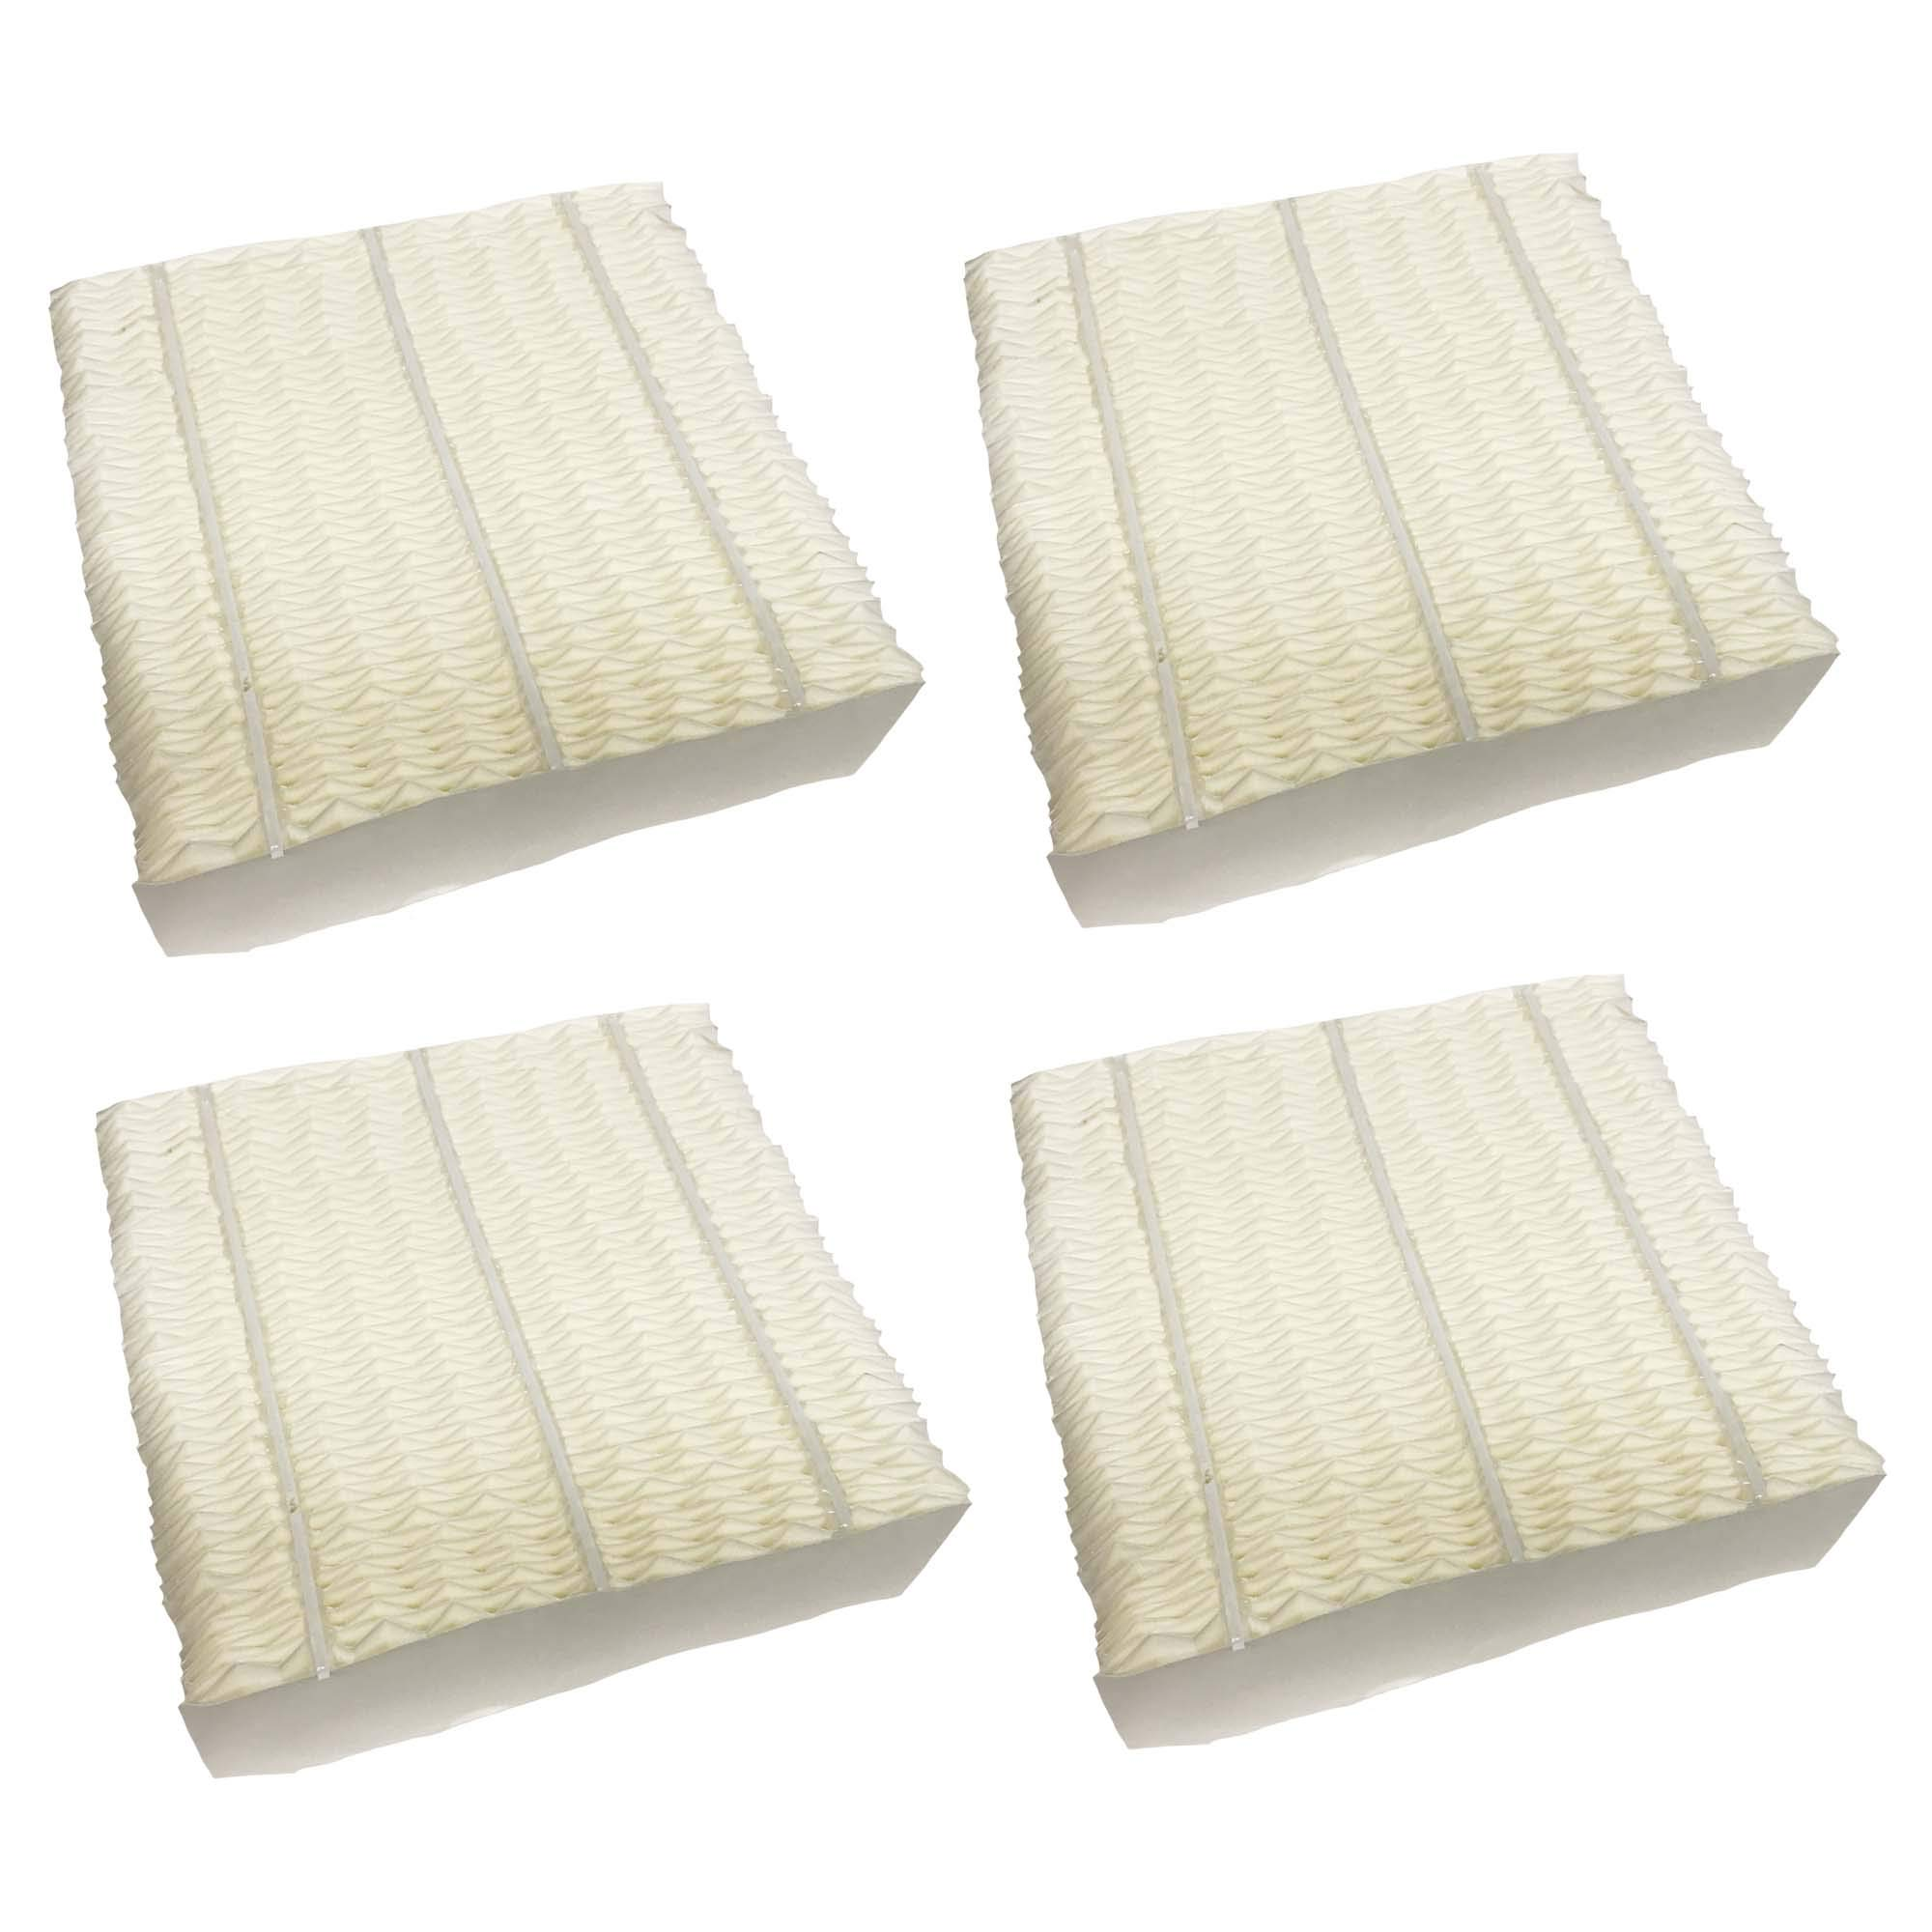 Think Crucial 4 Replacements Aircare 1043 Paper Wick Humidifier Filter Fits Spacesaver 800, 8000 Series Console, 10.8'' x 4.2'' x 12.5''